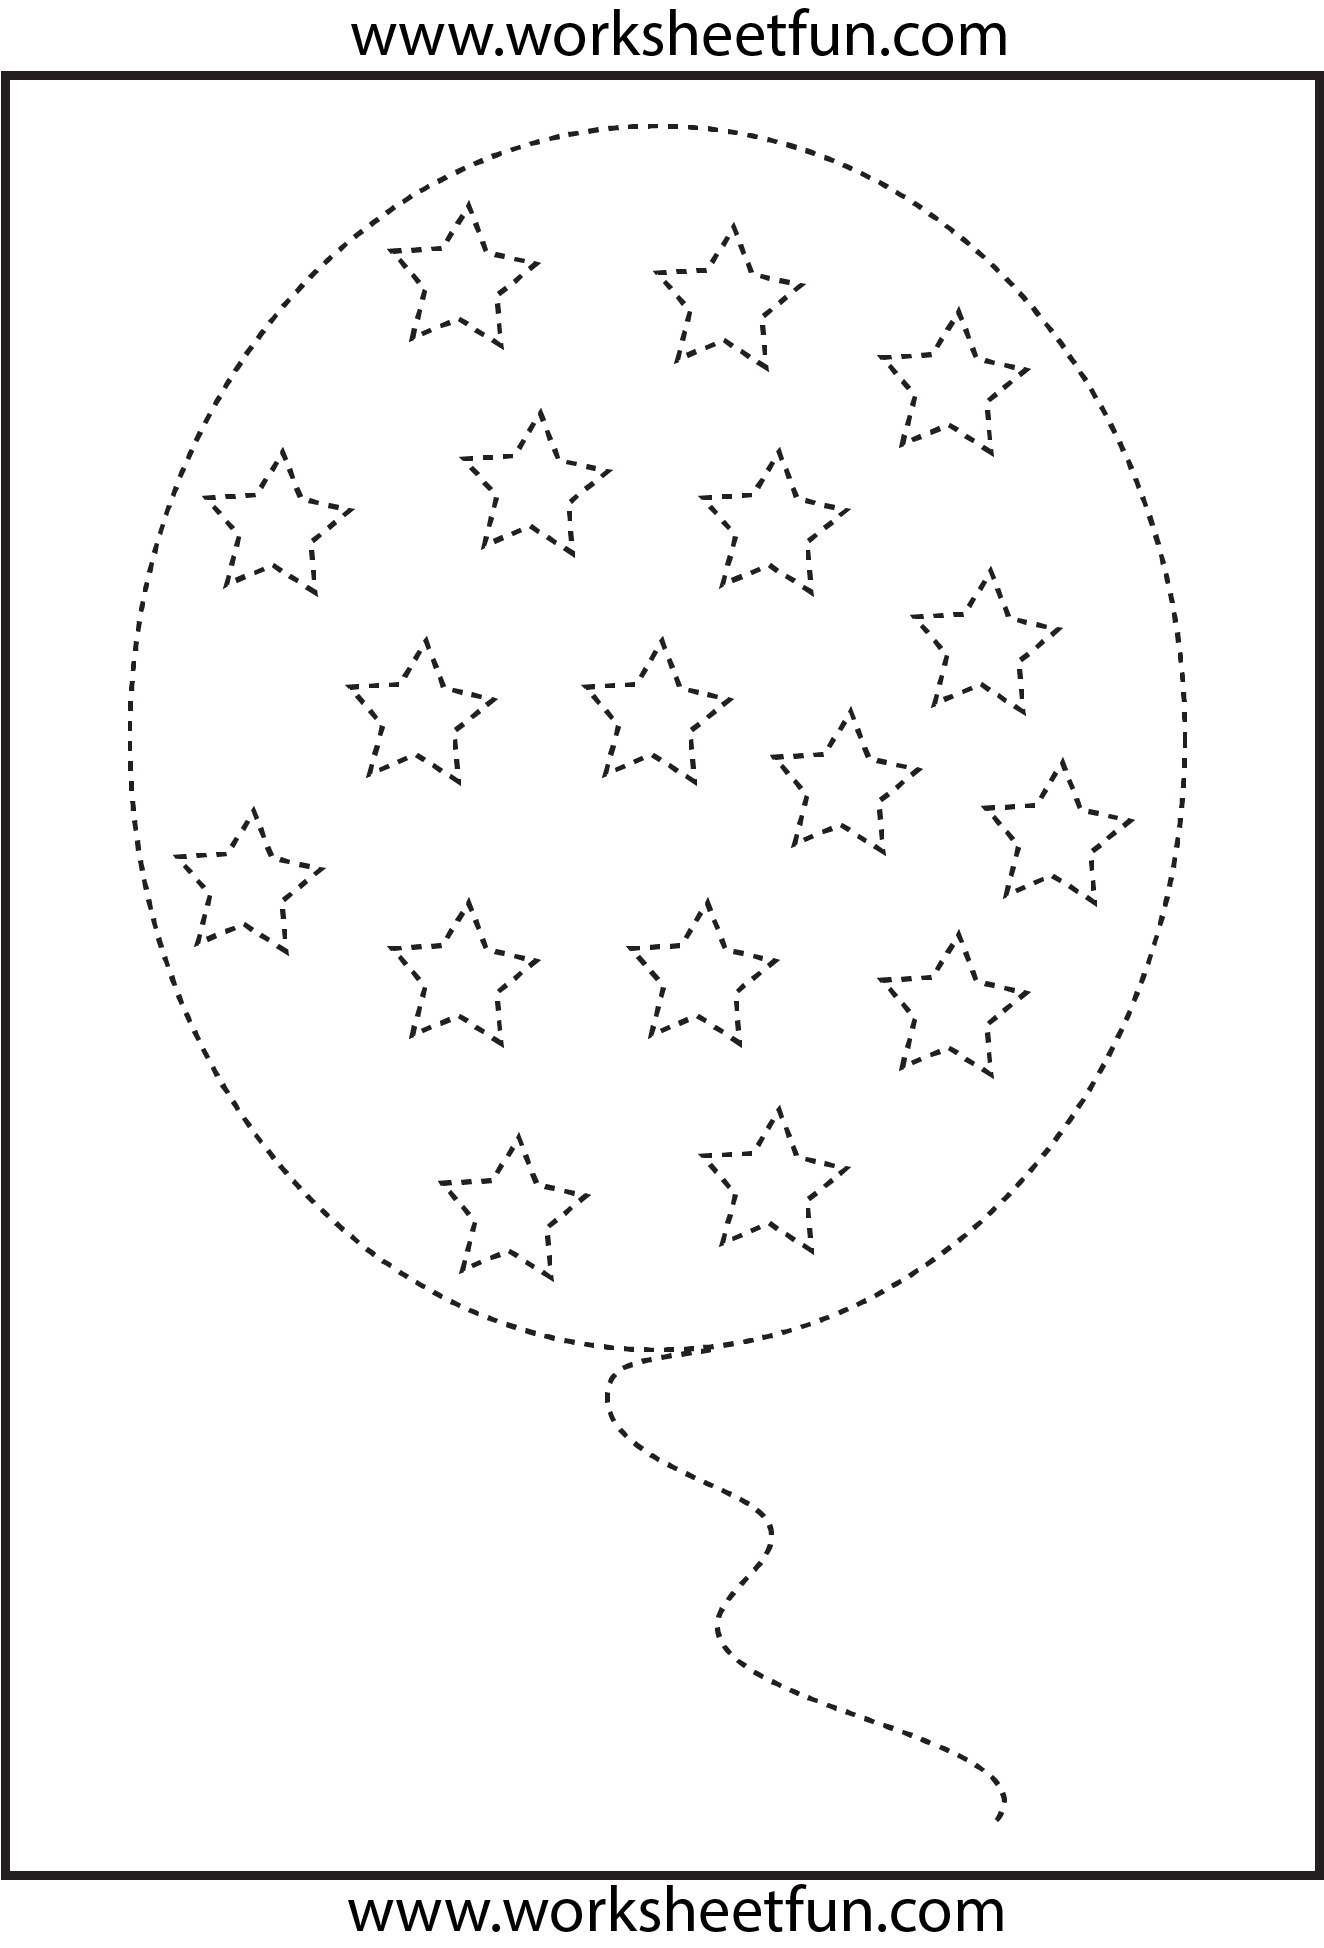 Picture Tracing Balloon 1 Worksheet Free Printable Worksheets Worksheetfun